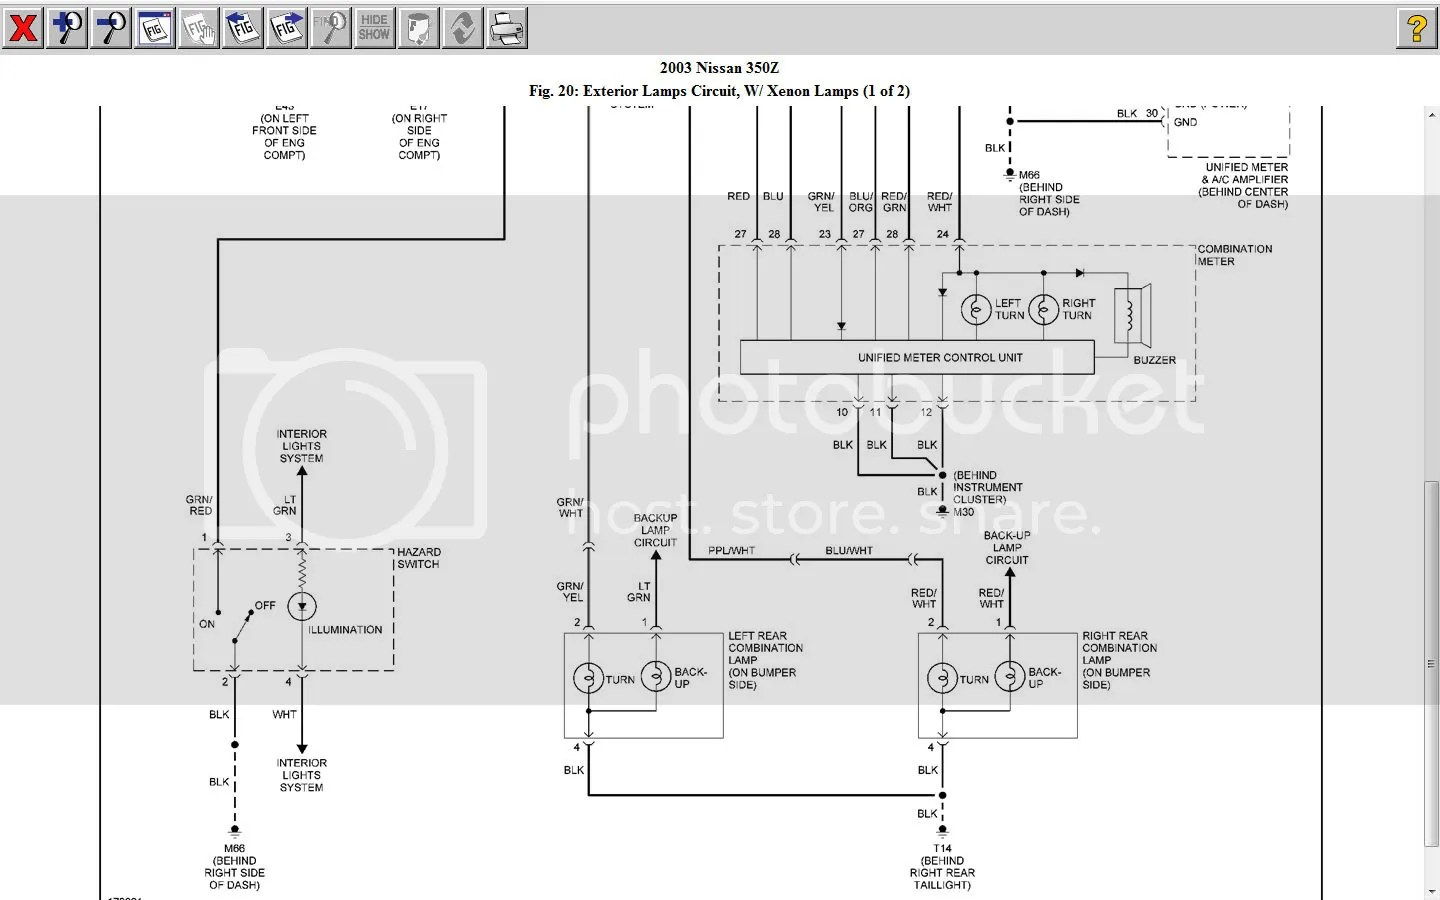 hight resolution of 350z tail light problems nissan 350z forum nissan 370z tech forums diagram 2004 nissan 350z